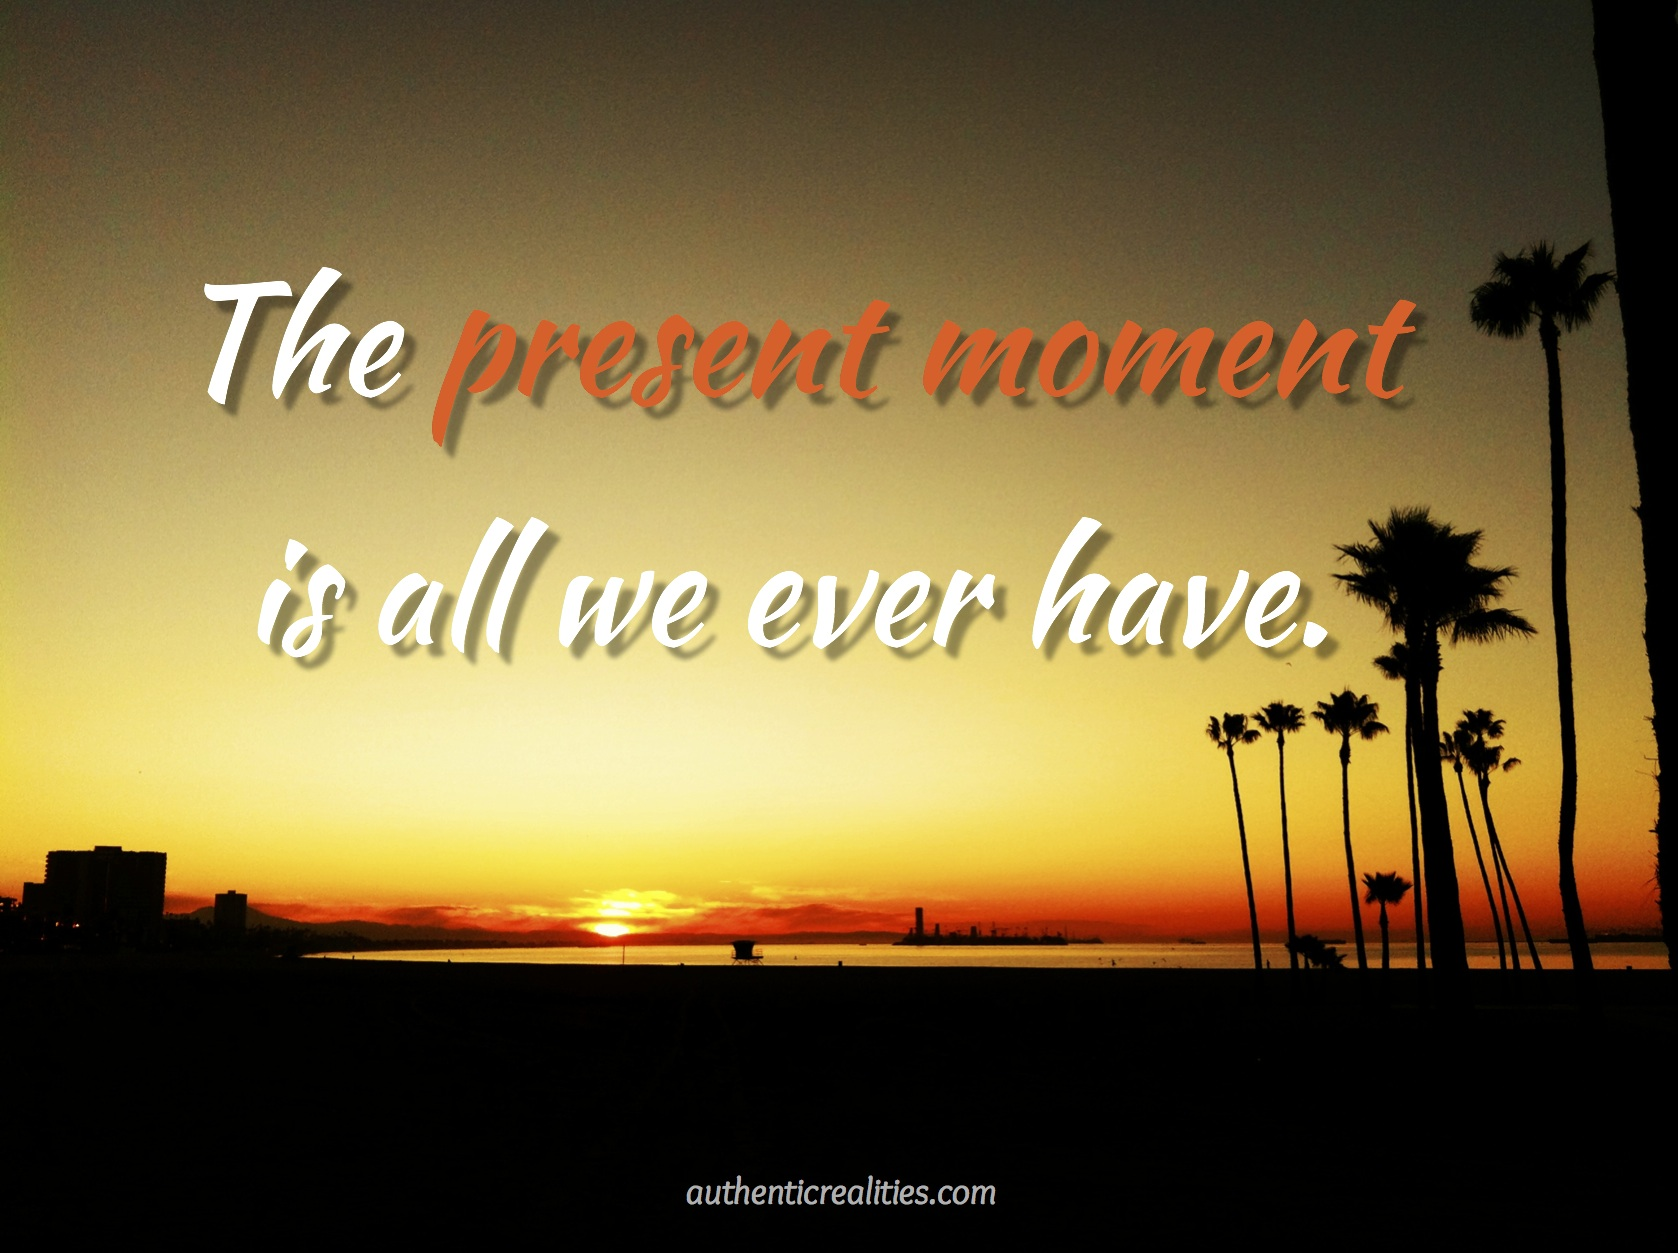 Kết quả hình ảnh cho THE PRESENT MOMENT IS ALL WE HAVE